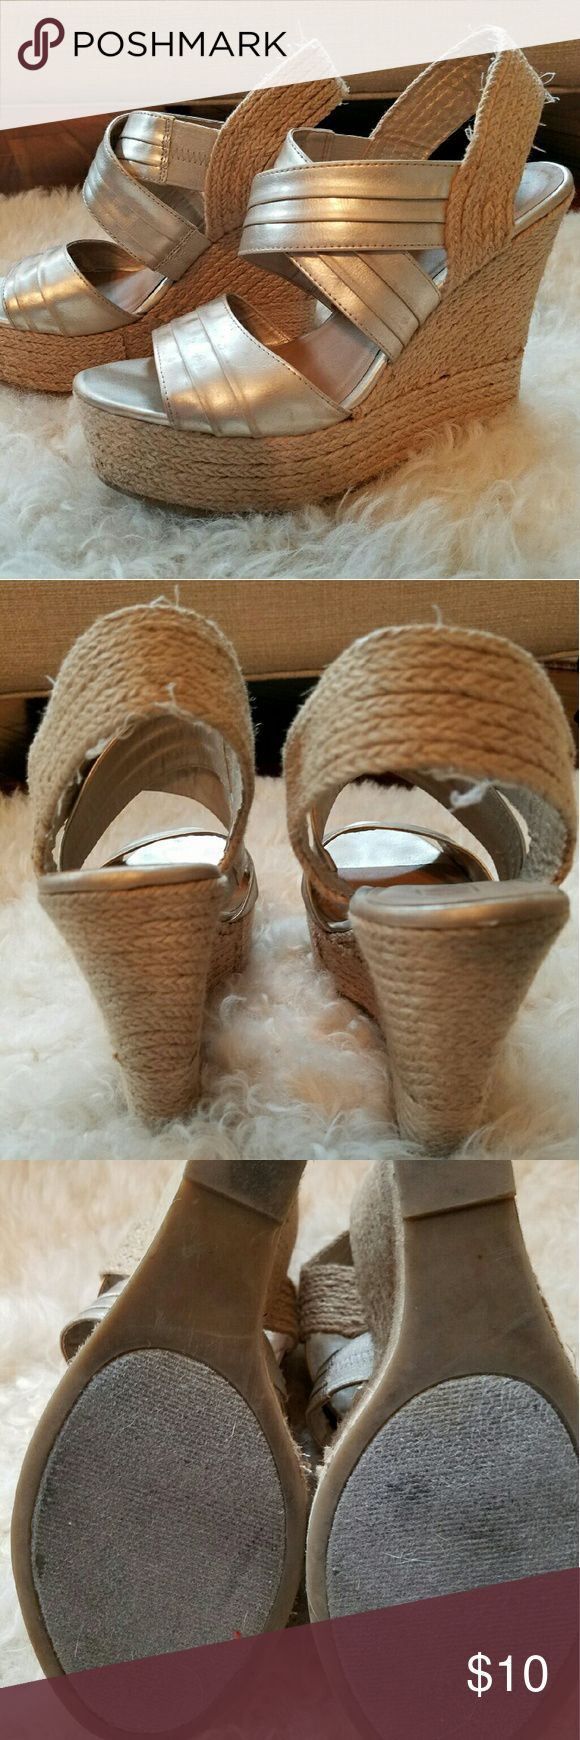 Gold Wedge Shoes Gently worn gold Mix No6 wedges. Minimal fraying but  still look super cute! Shoes Wedges